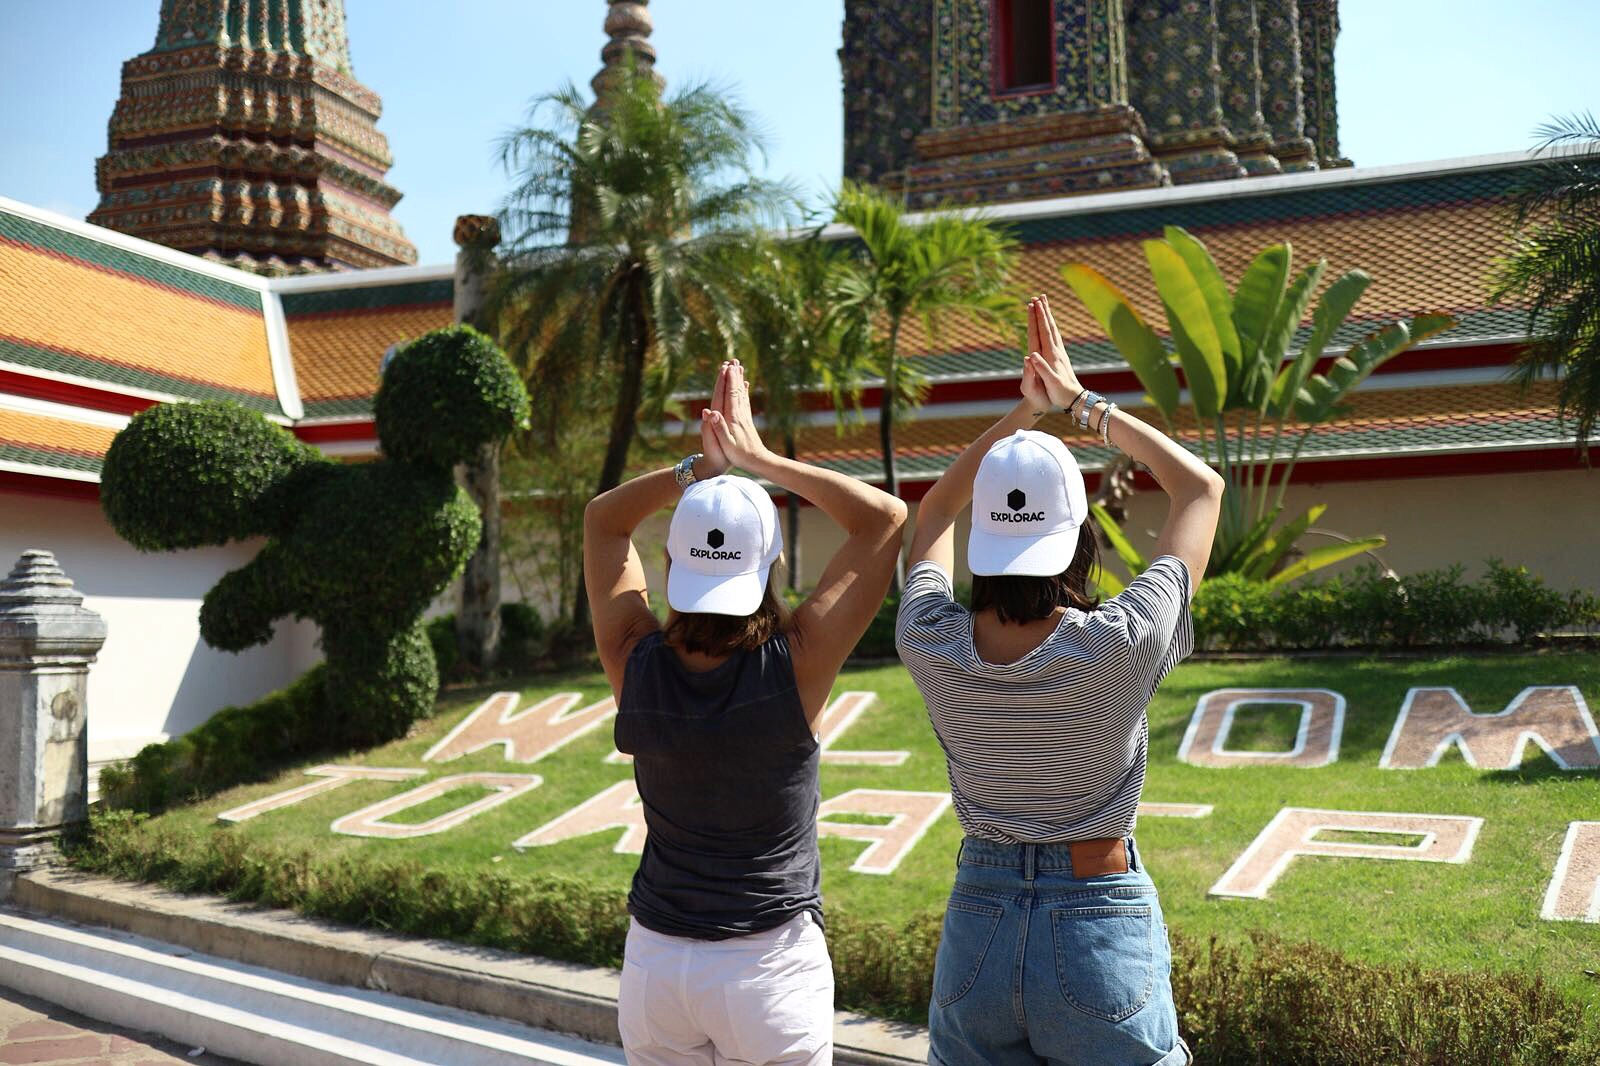 Two travelers represent EXPLORAC in Bangkok, Thailand. / Photo courtesy EXPLORAC